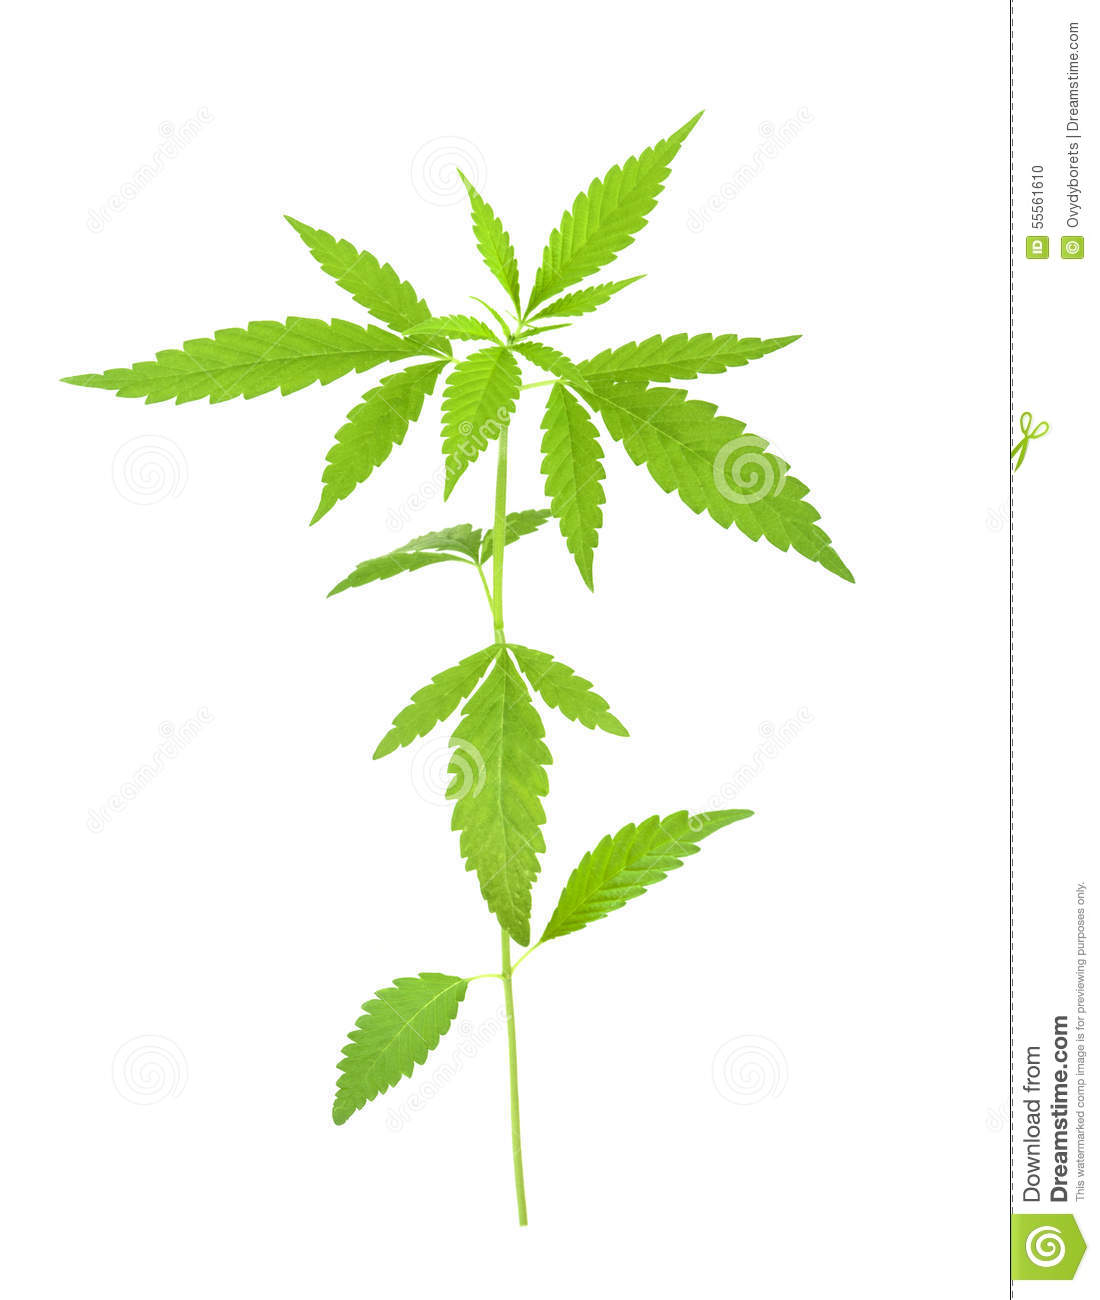 an introduction to the marijuana a plant cannabis sativa Marijuana is the common name for cannabis sativa, a hemp plant that grows throughout temperate and tropical climates  introduction - marijuana and medicine.